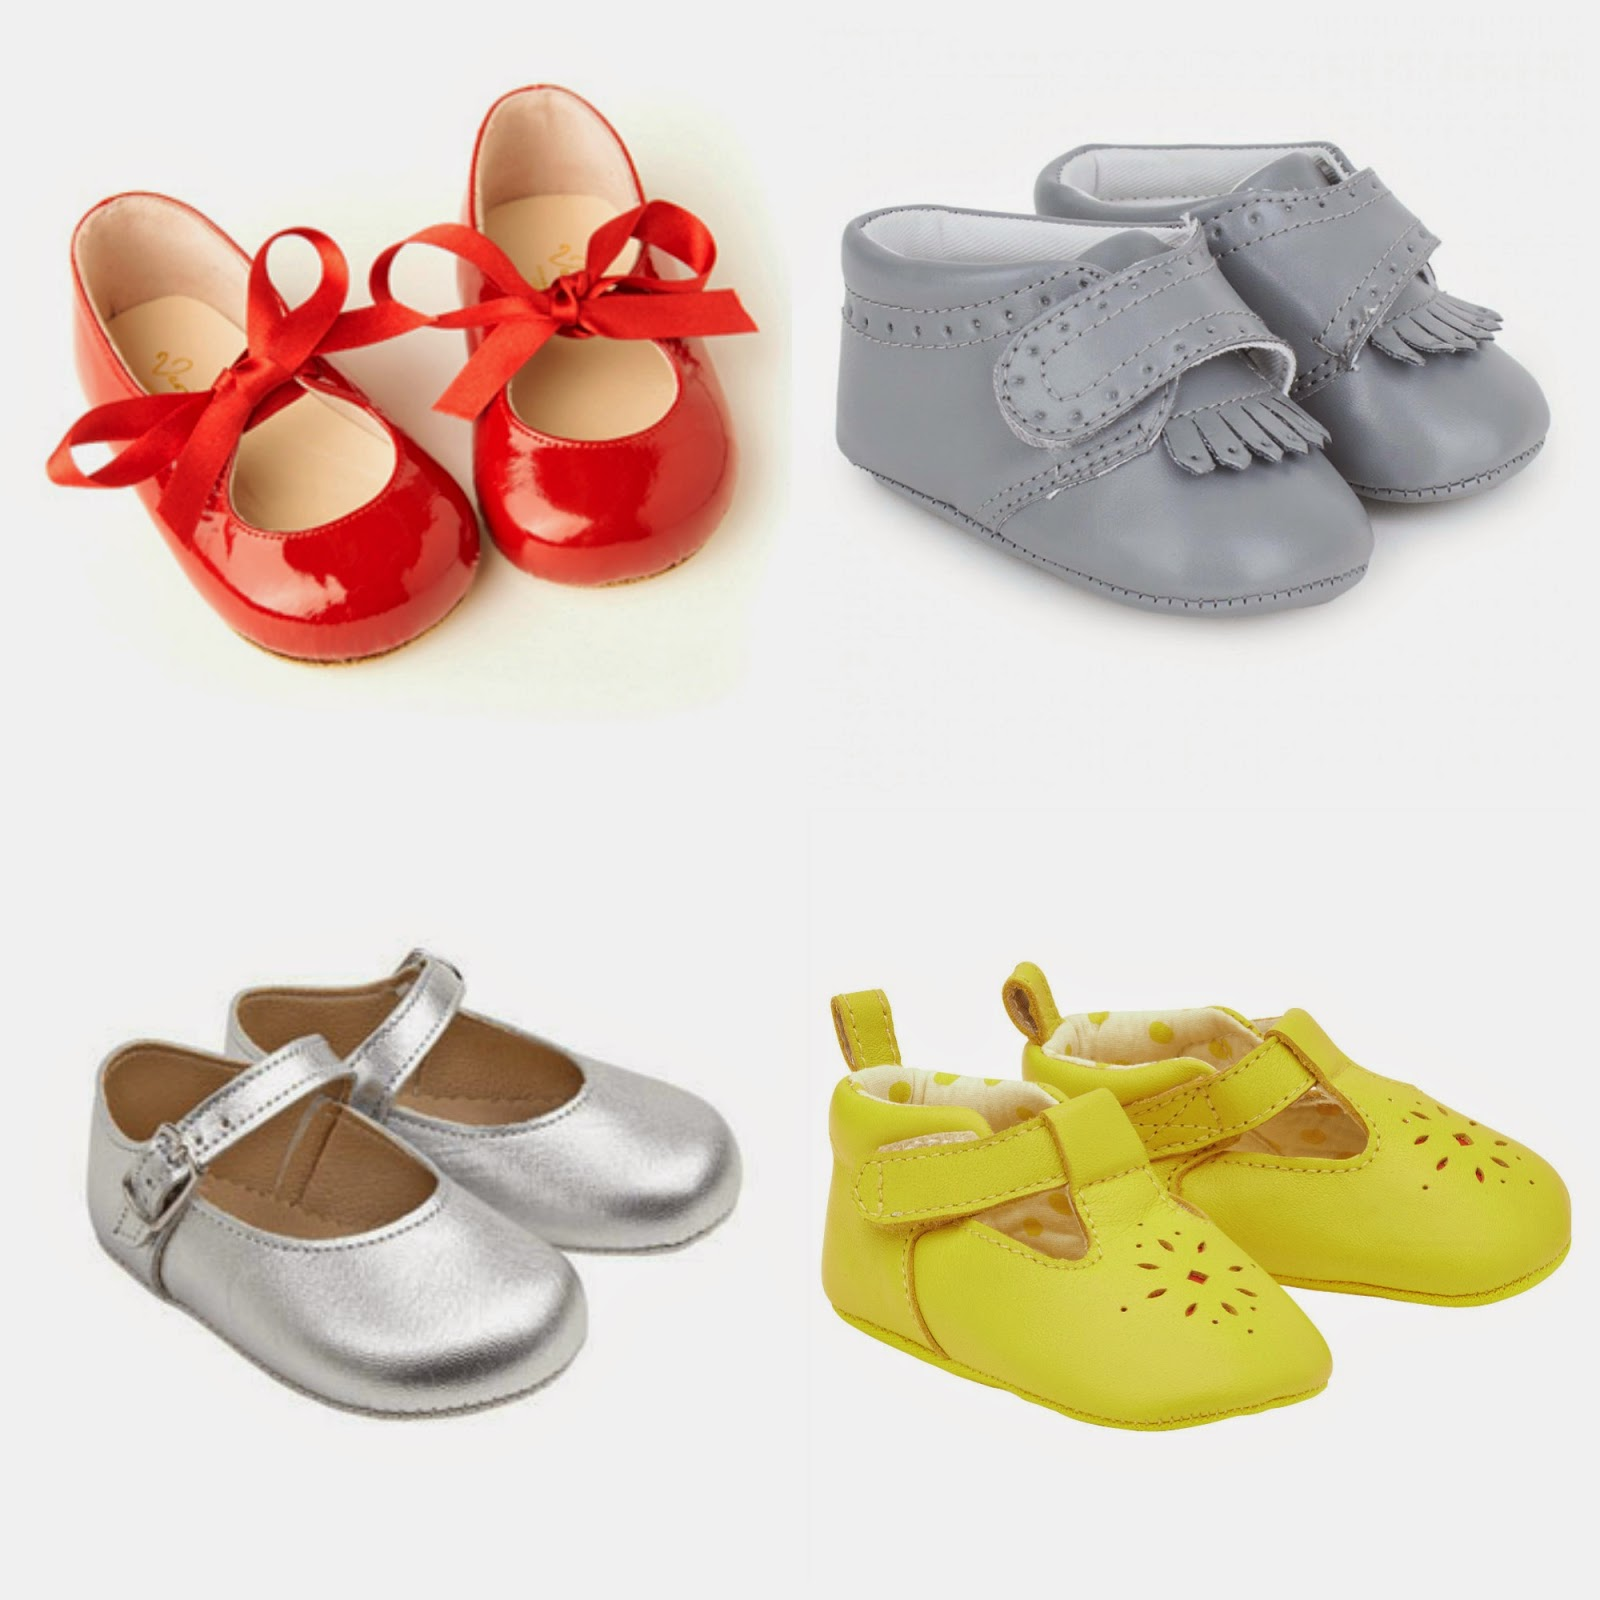 clarks baby first shoes